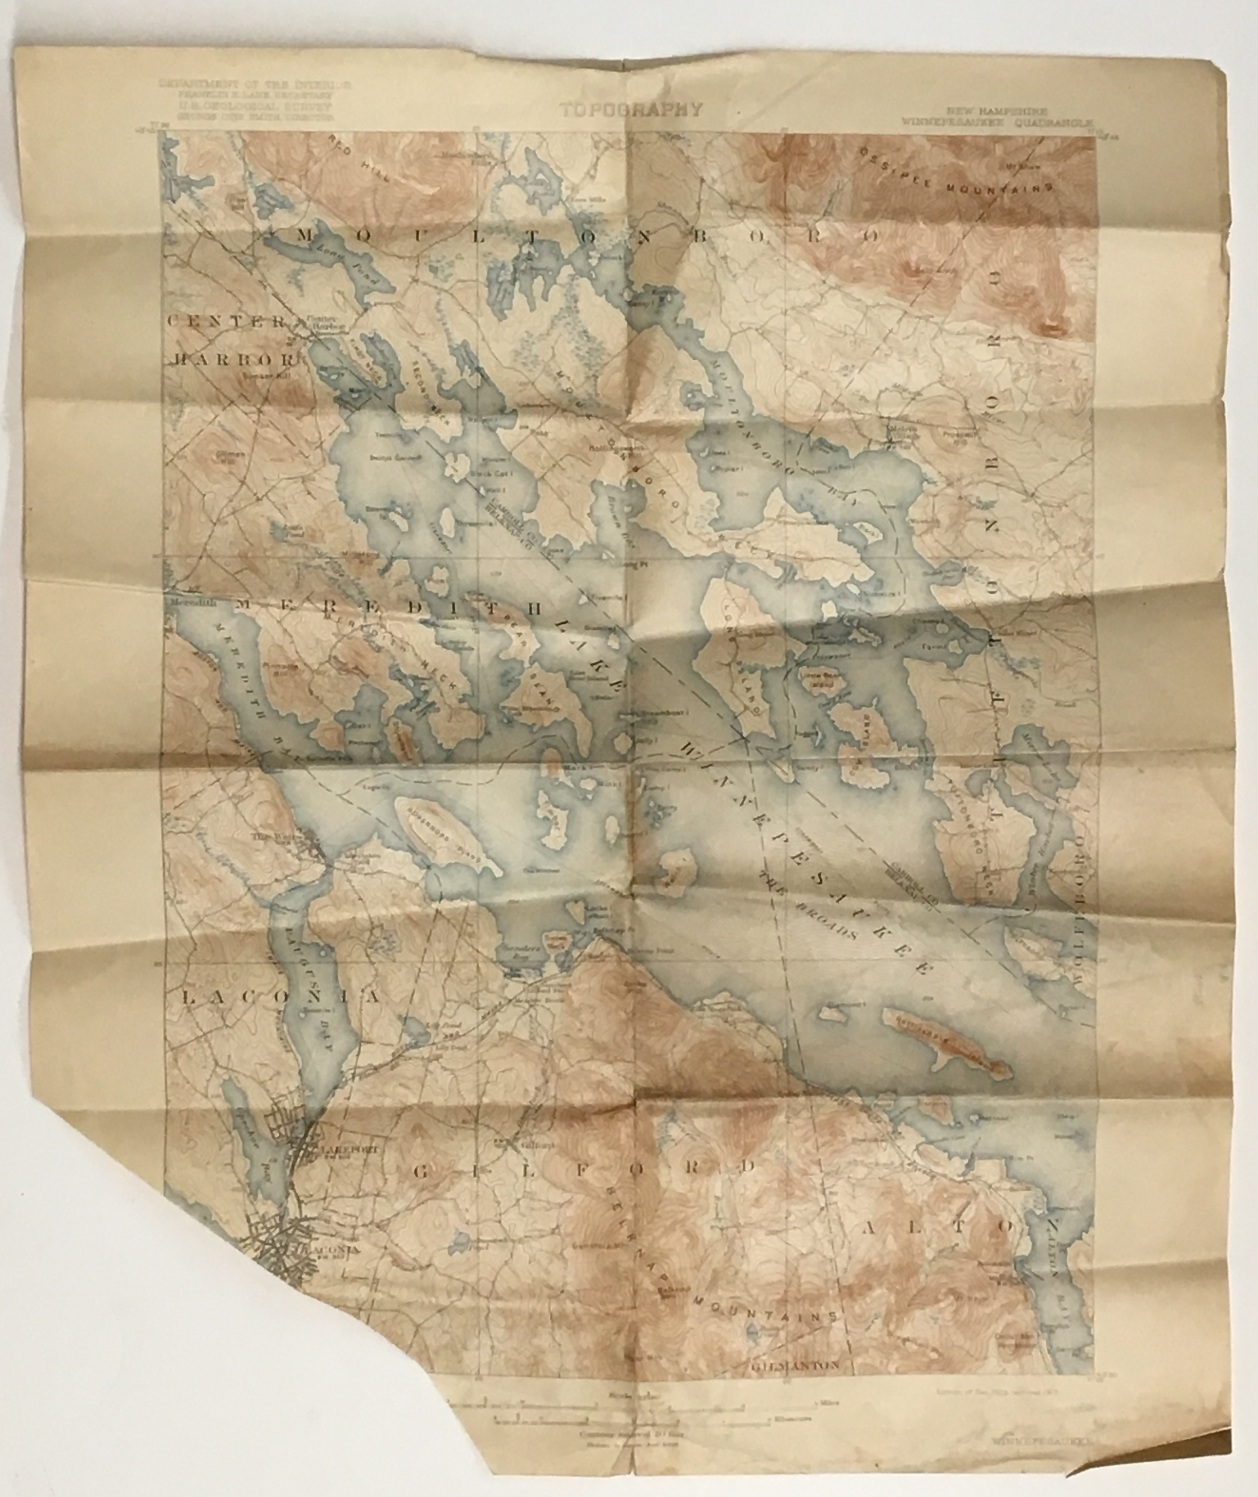 FileElectoralCollegeLargepng Wikimedia Commons Stock Images - Surety maps